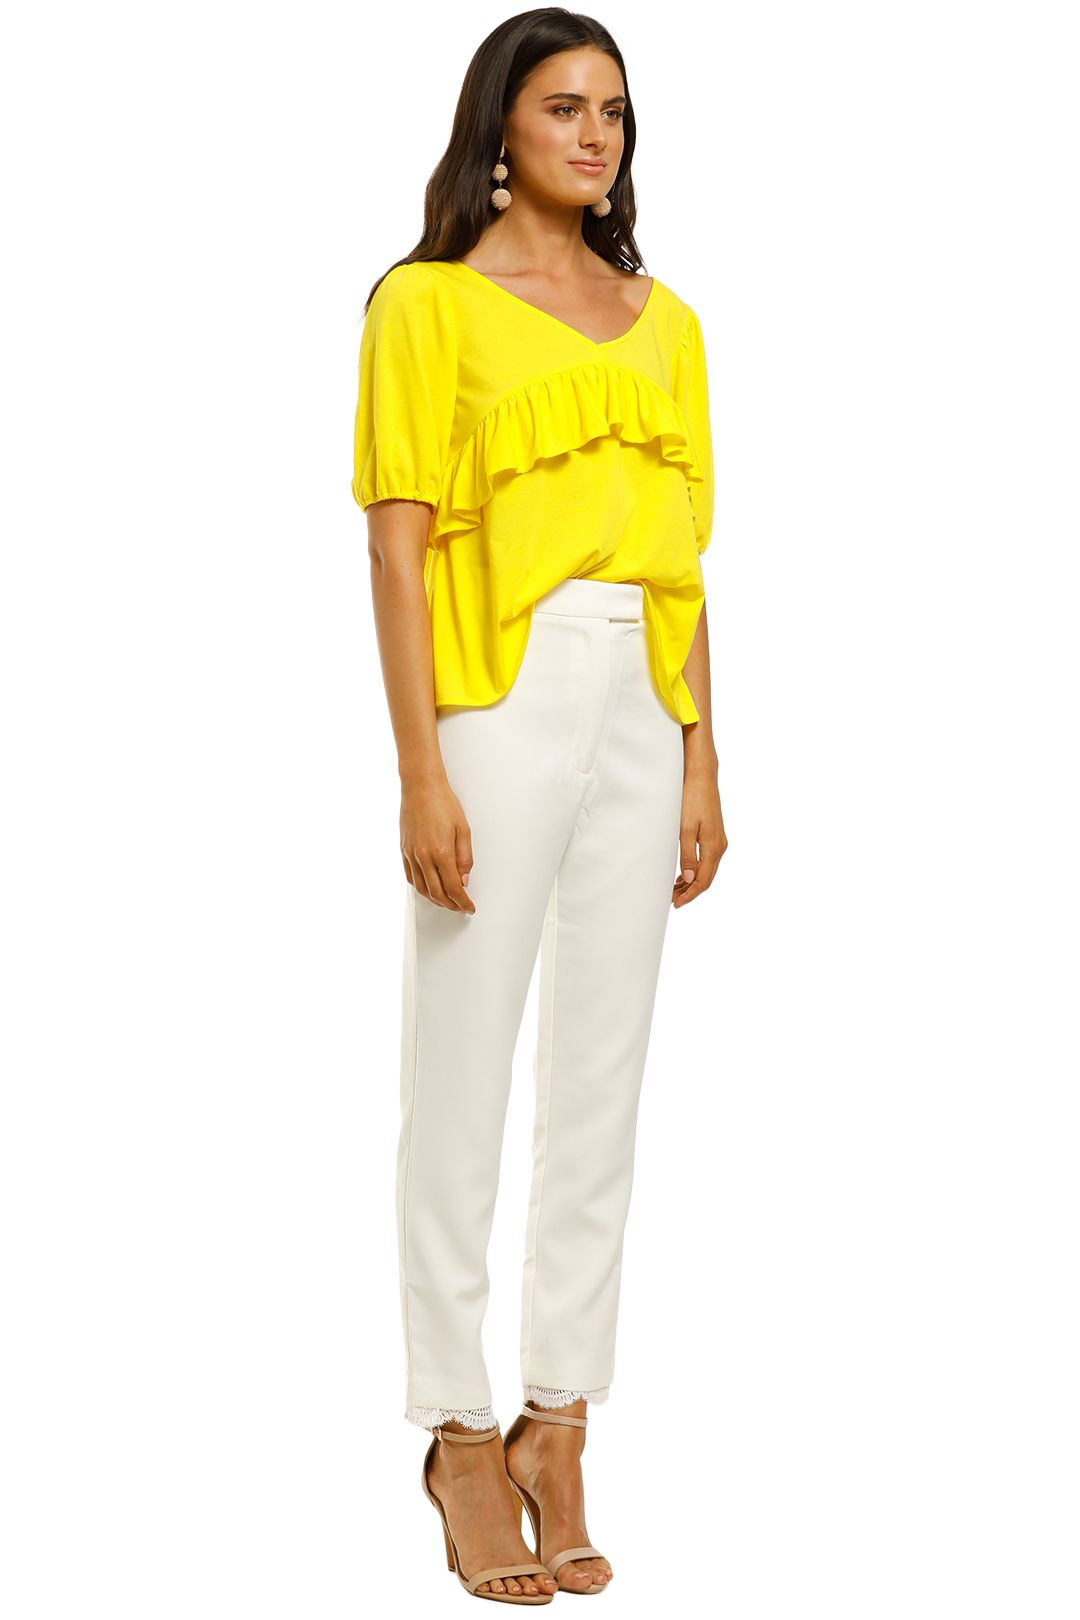 Coop-by-Trelise-Cooper-Frill-Life-Top-Yellow-Side